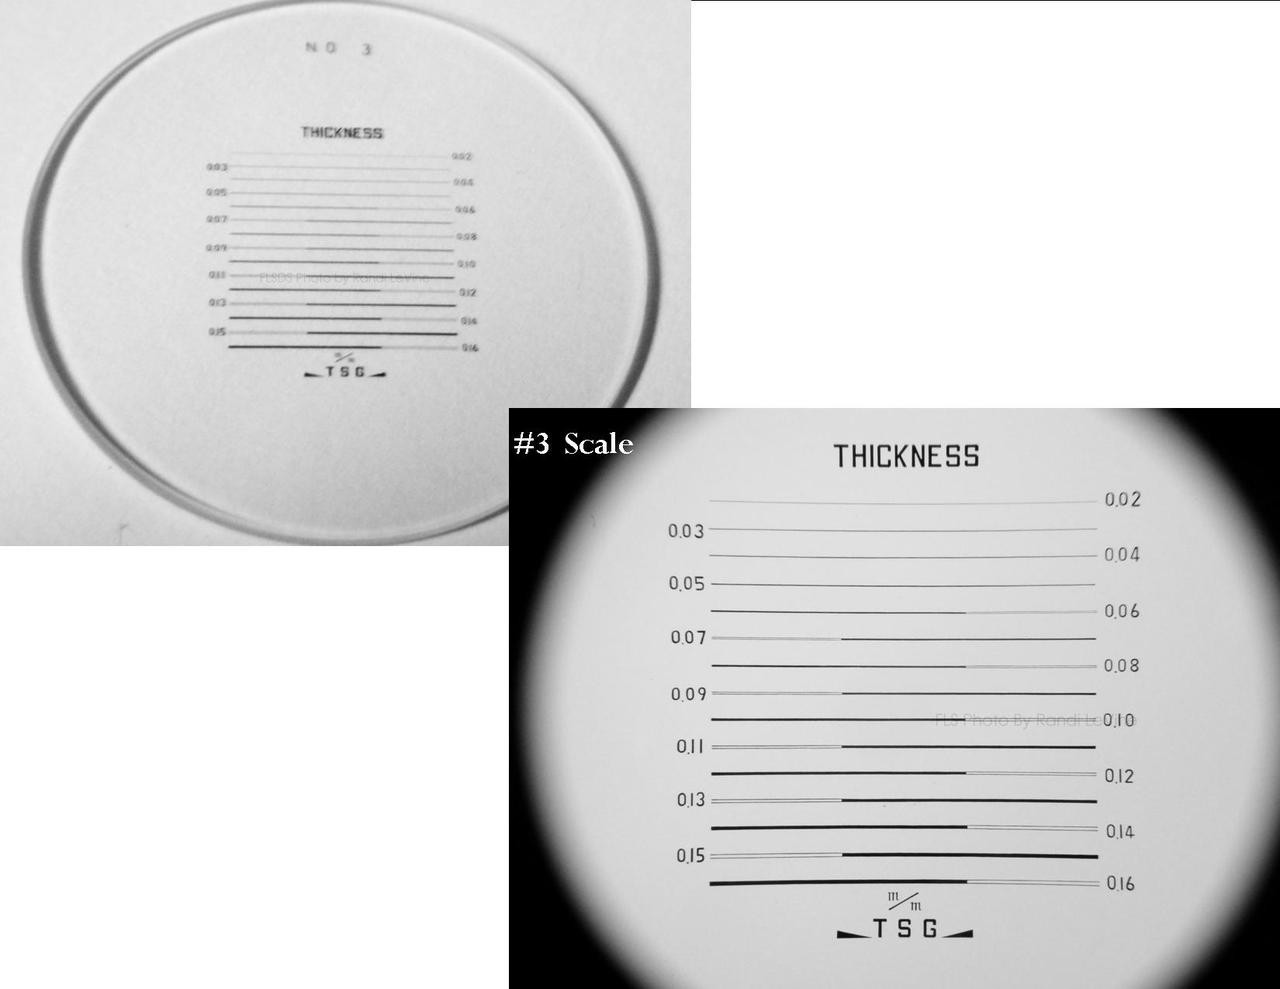 Optical Comparator Reticles , Peak Scale for 10X Loupe 1983 , Ret-1983-3 , #3 Scale